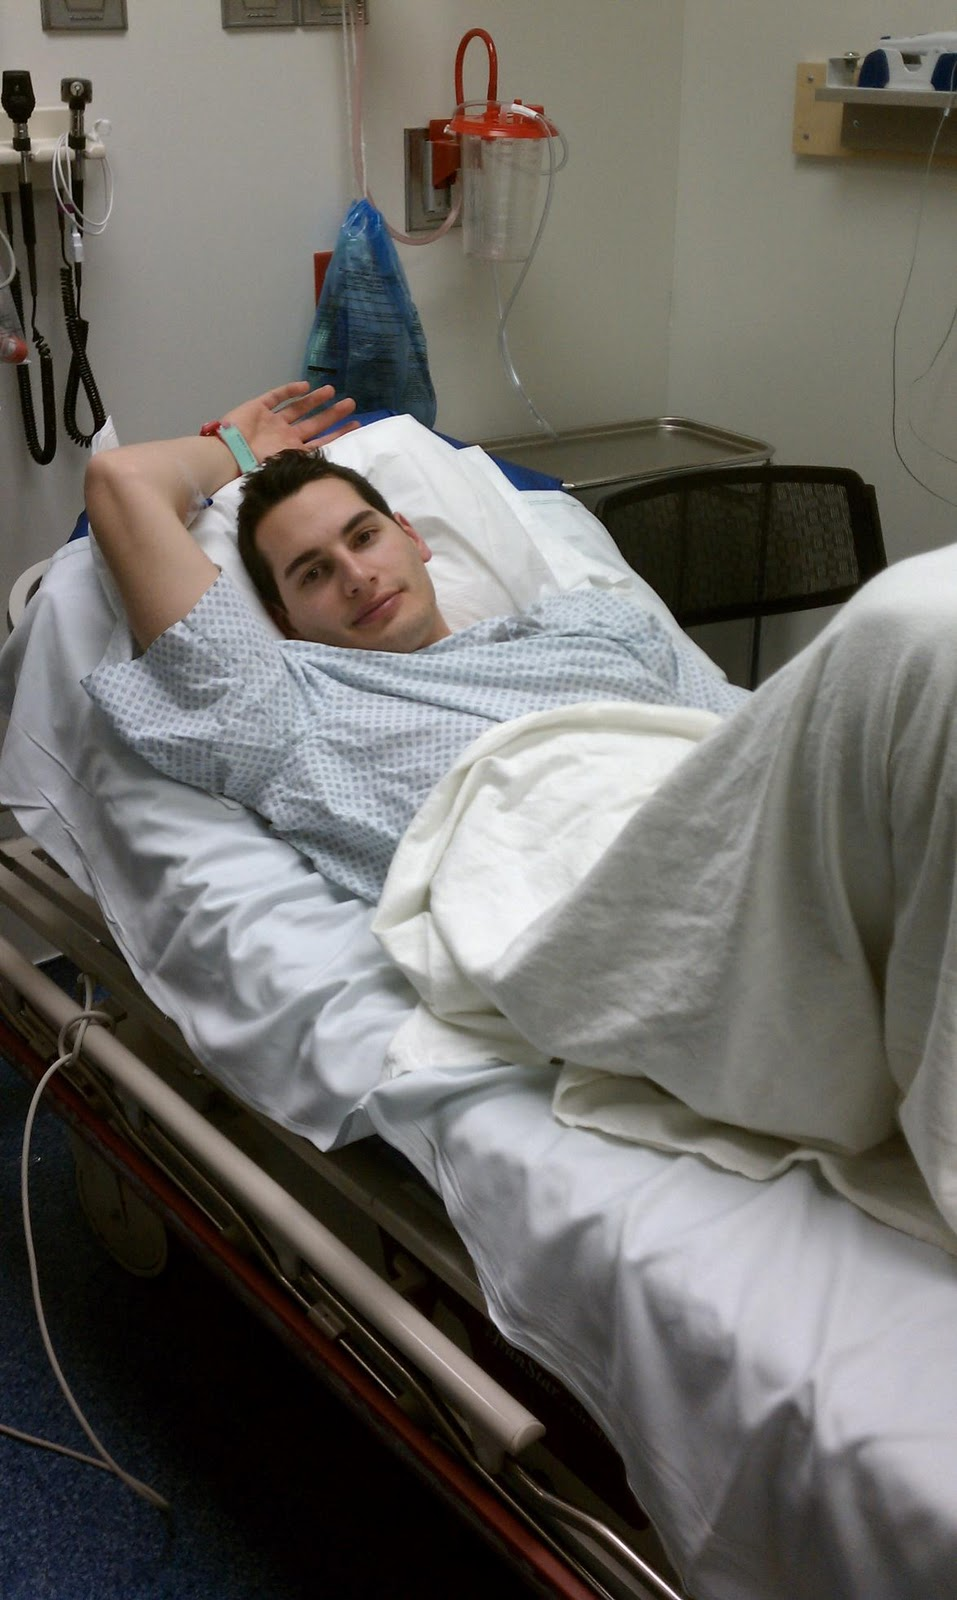 Just Like Heaven: Who needs an appendix anyways?